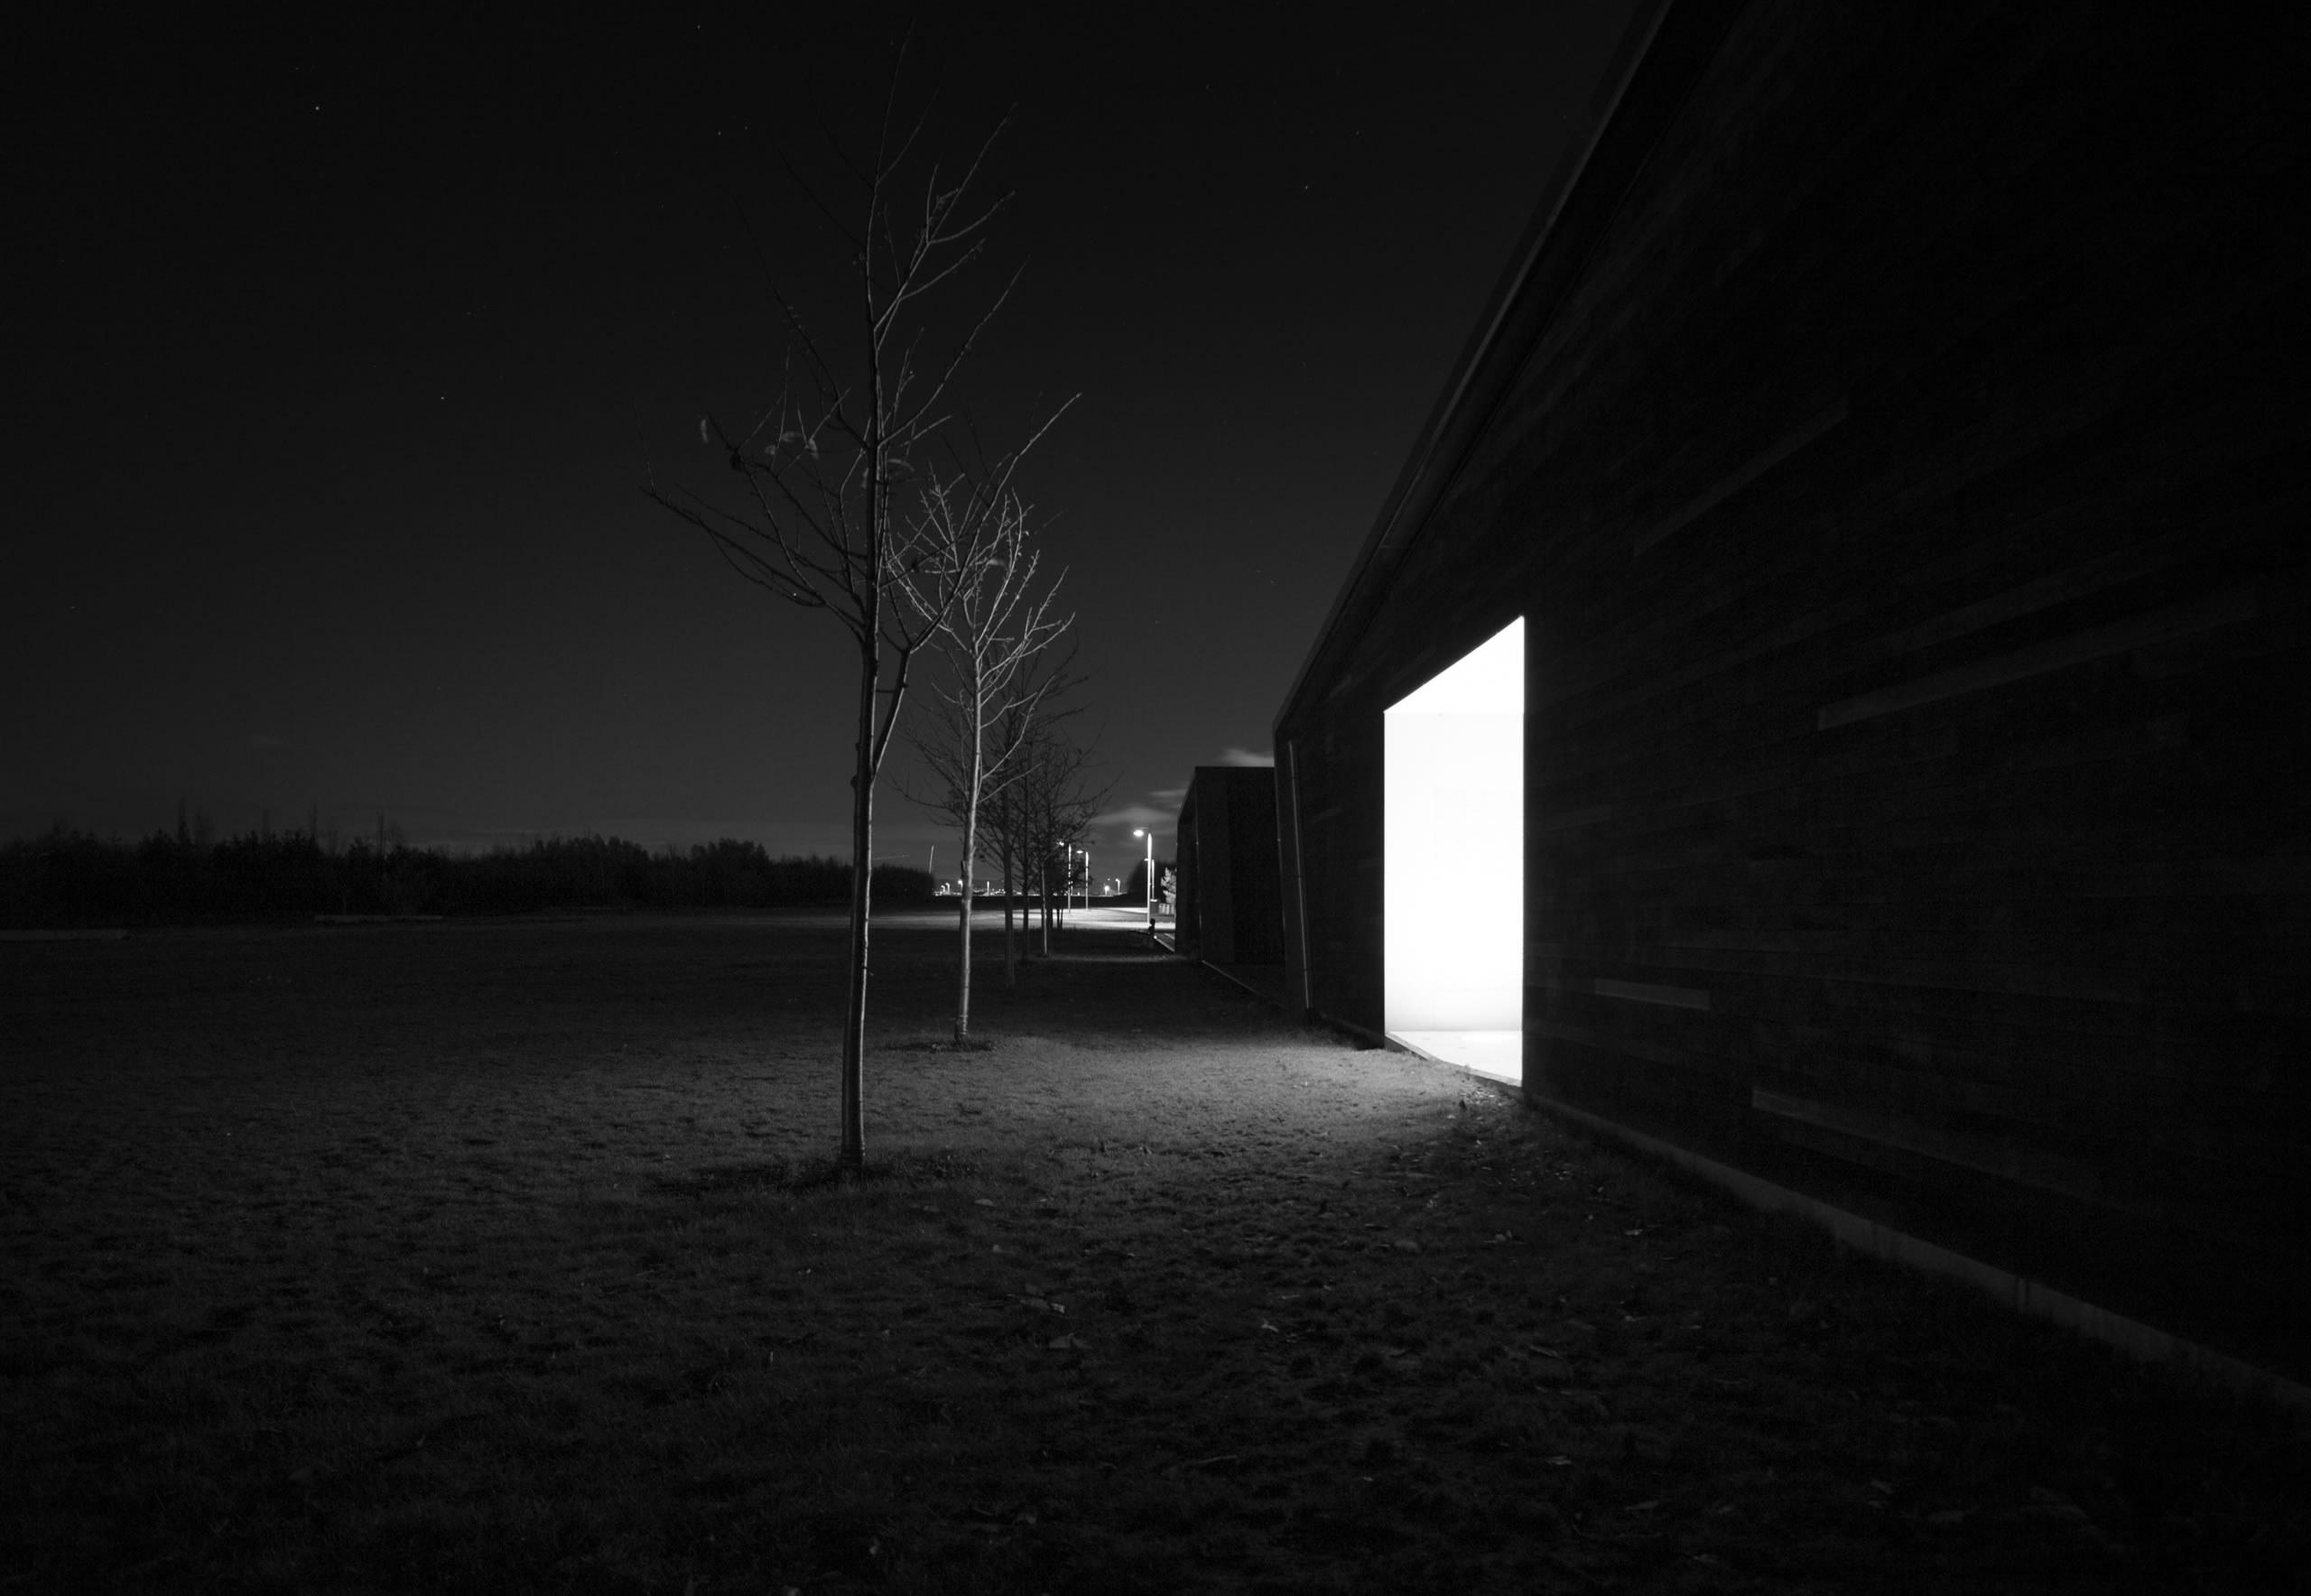 square, light coming from door, pitch black photo by Svein Nodrum